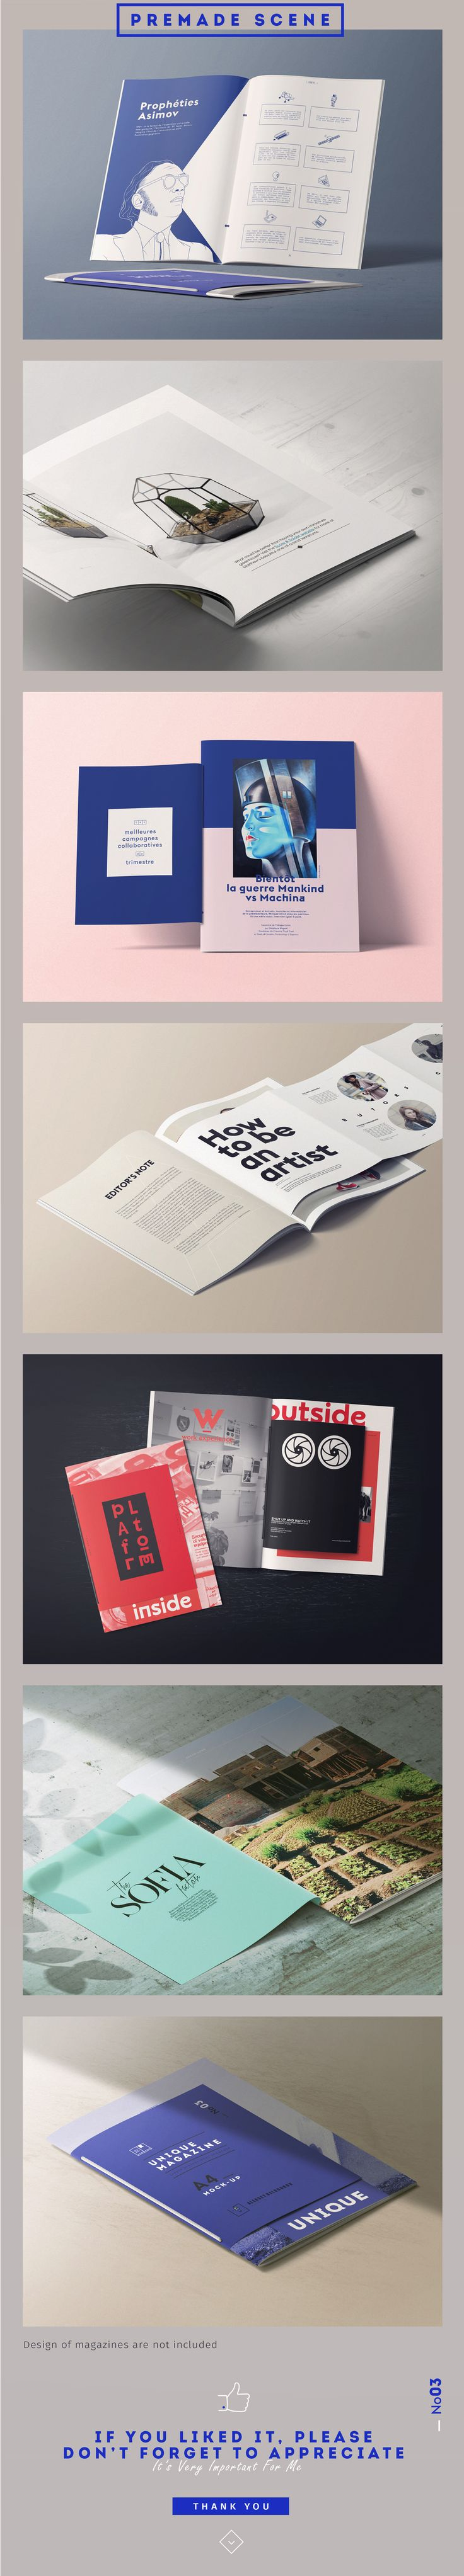 [25] UNIQUE MAGAZINES MOCKUPS/rope by Aleksey_Belorukov on @creativemarket